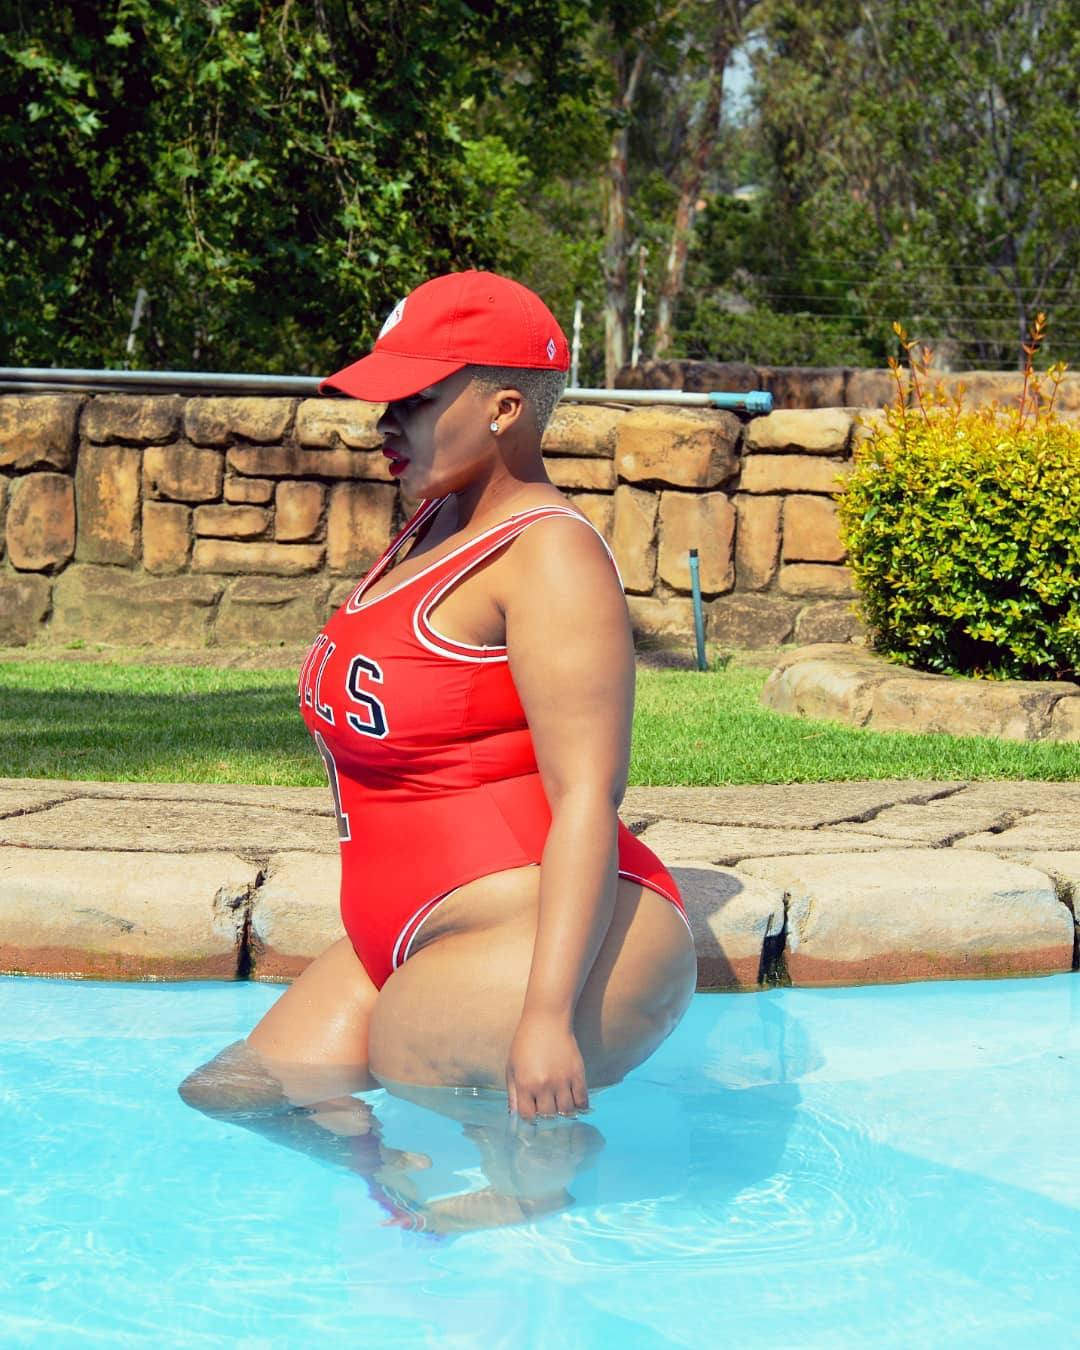 Miss Curvy Lala South African Plus Size Model Exposed Her Elegant Asserts On Instagram | Picture 8